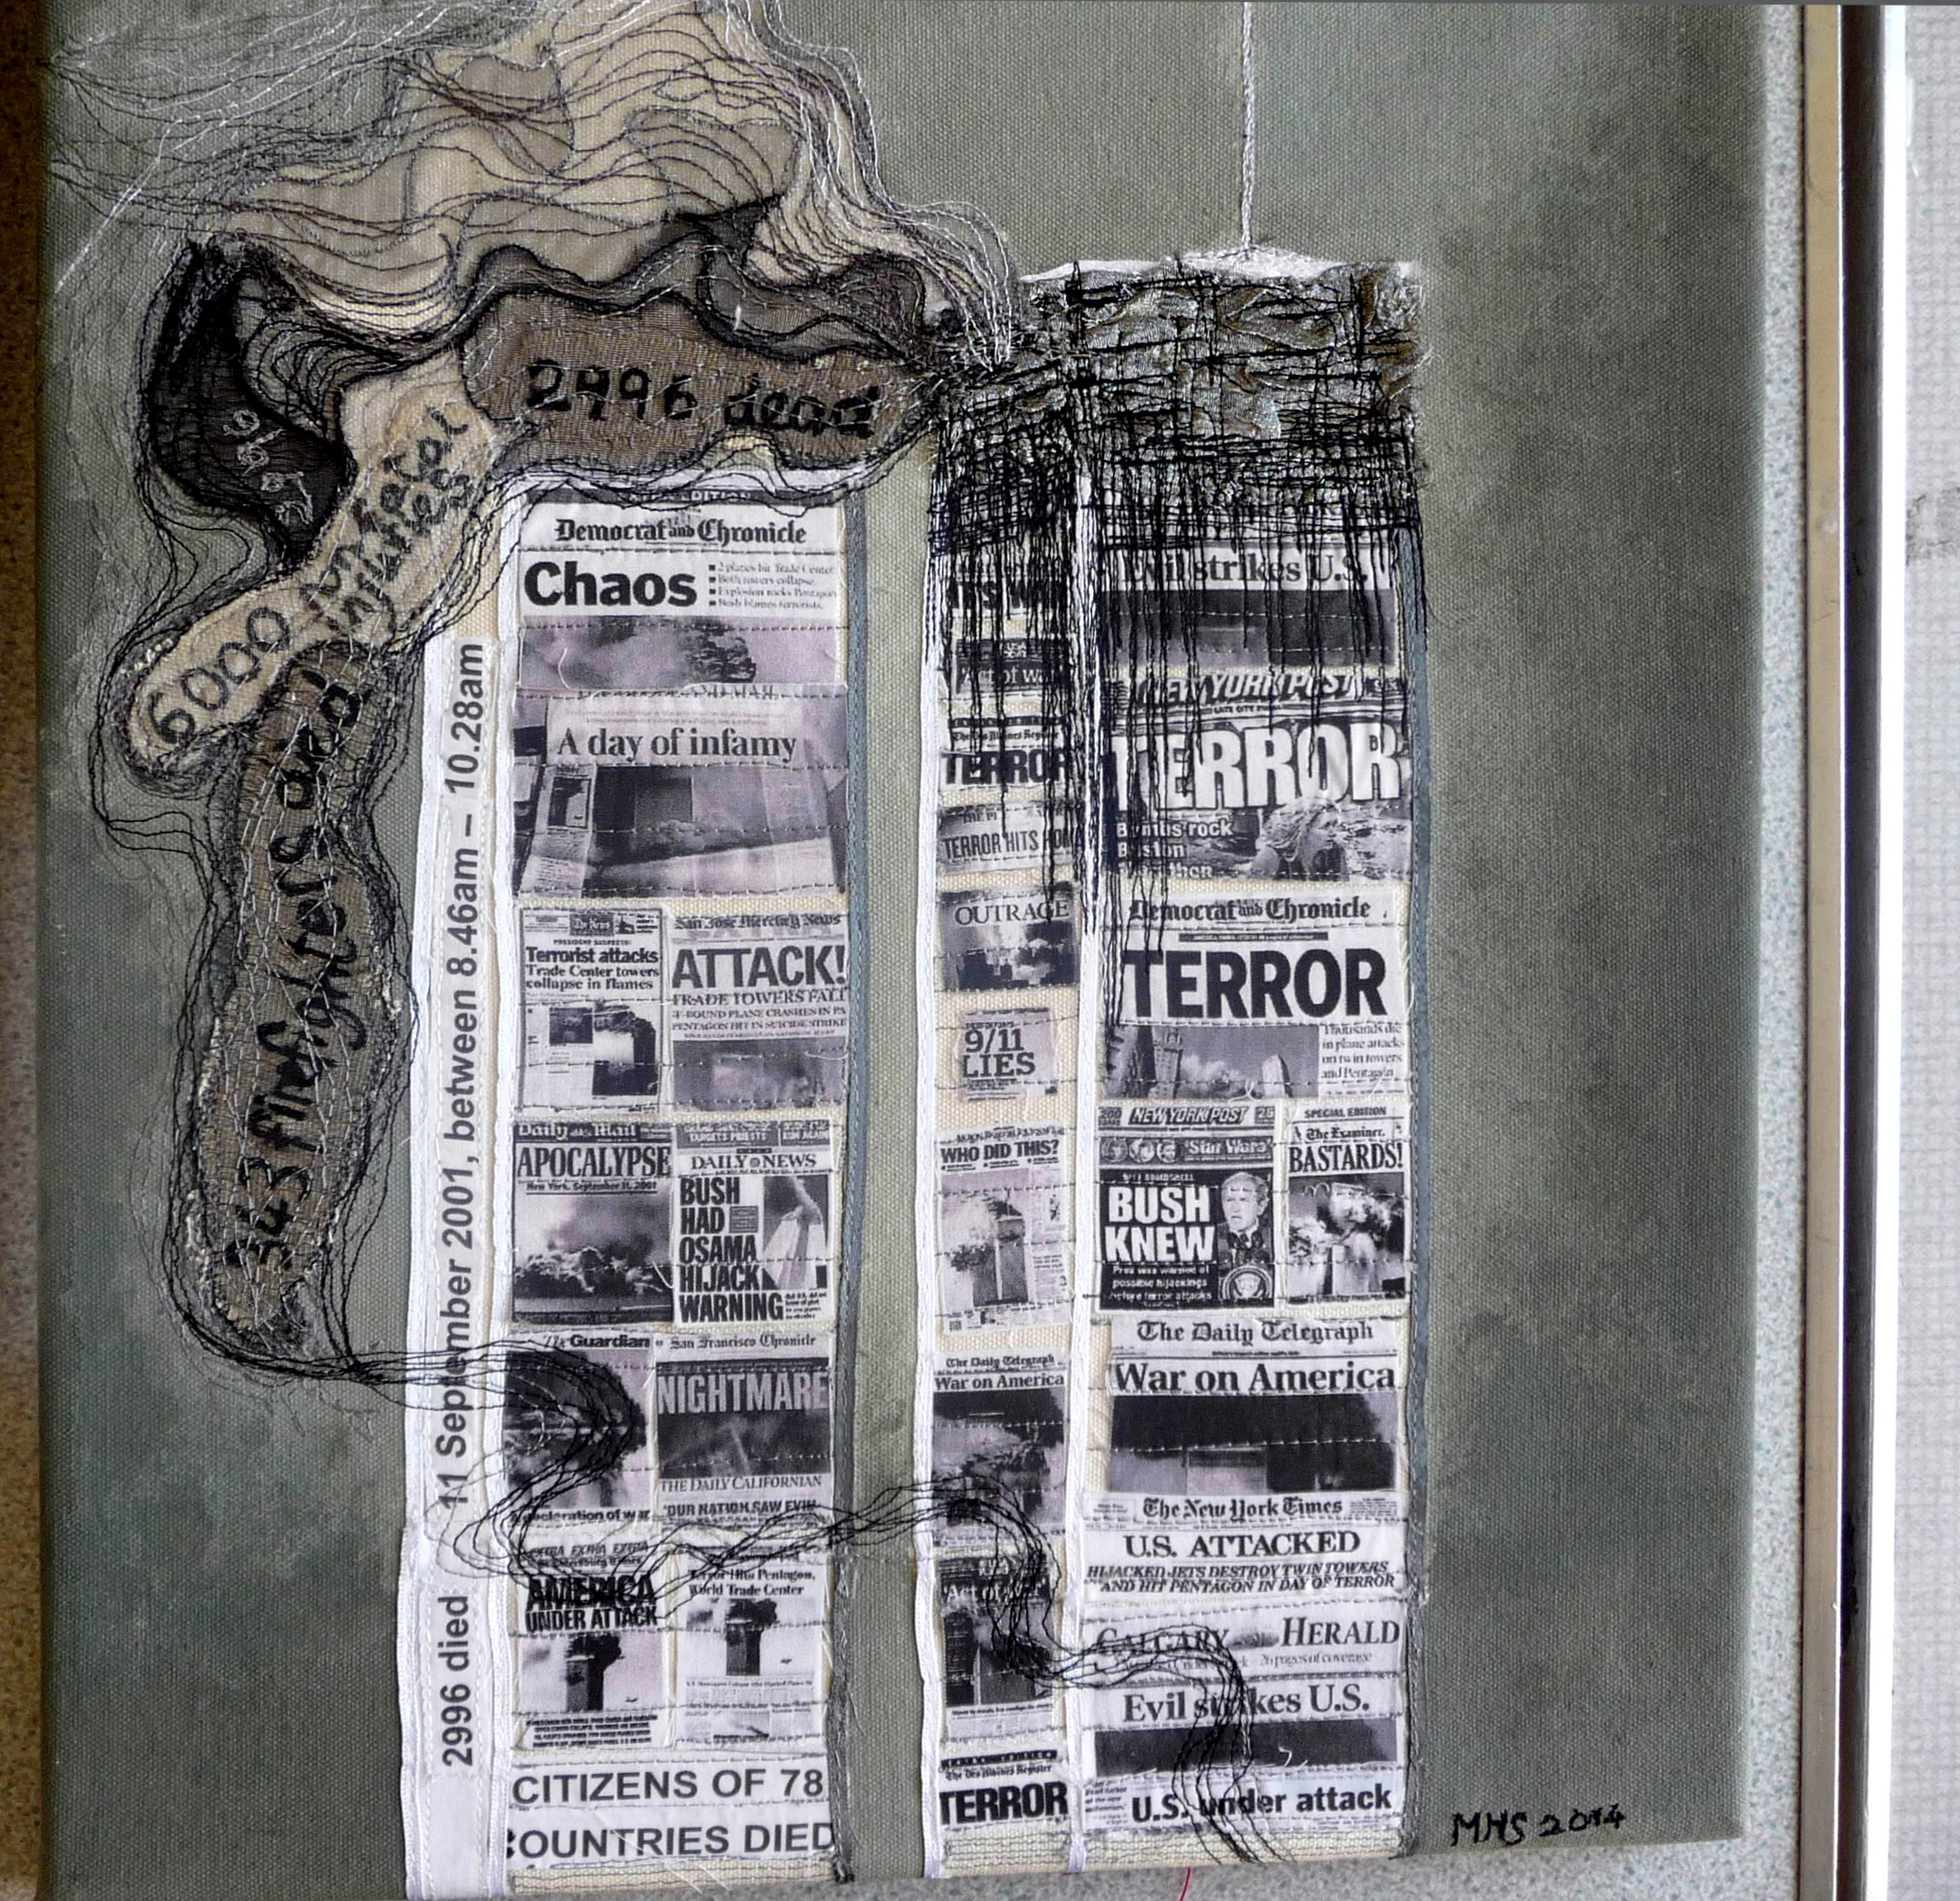 NINE ELEVEN by Marie Stacey, machine embroidery and collage